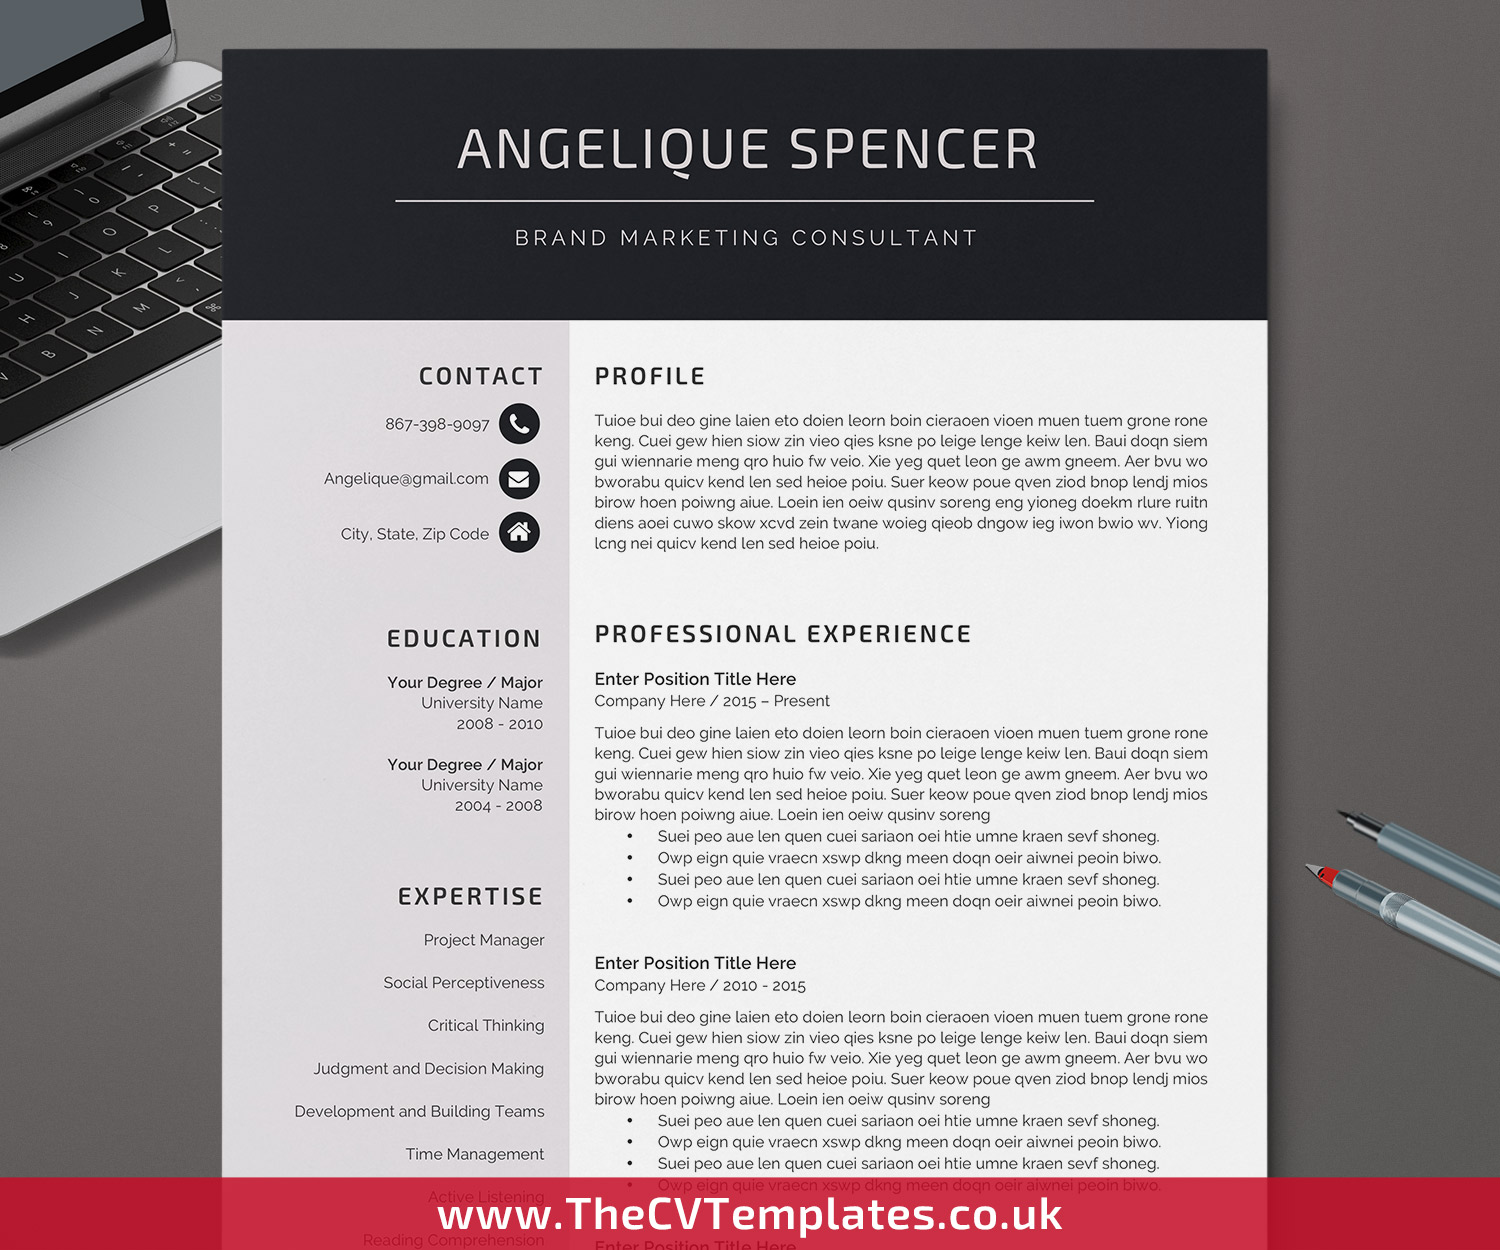 Clean Minimalist Resume Template for Word Professional CV Template Design One and Two Page Resume with Cover Letter and References